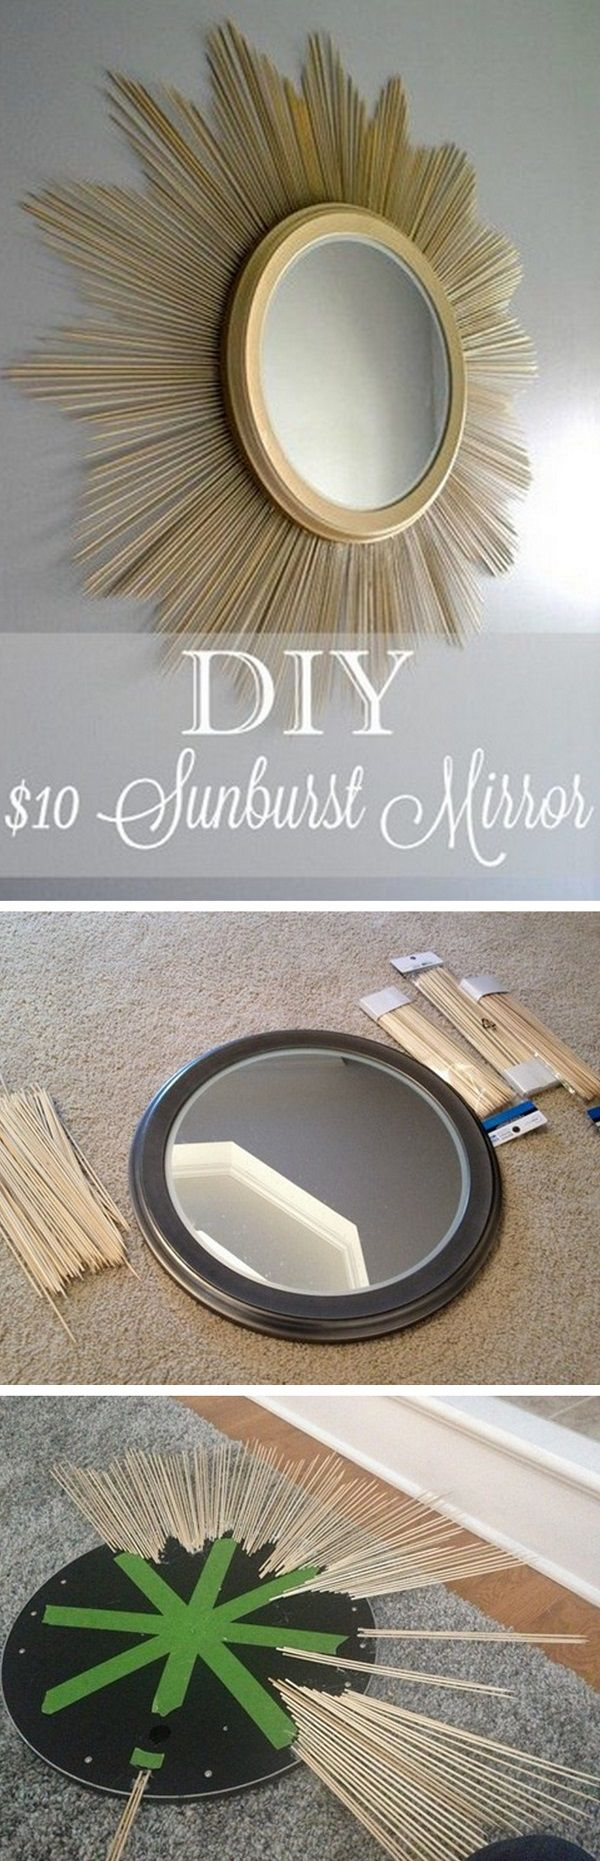 Check out how to make this DIY sunburst mirror for $10 @istandarddesign